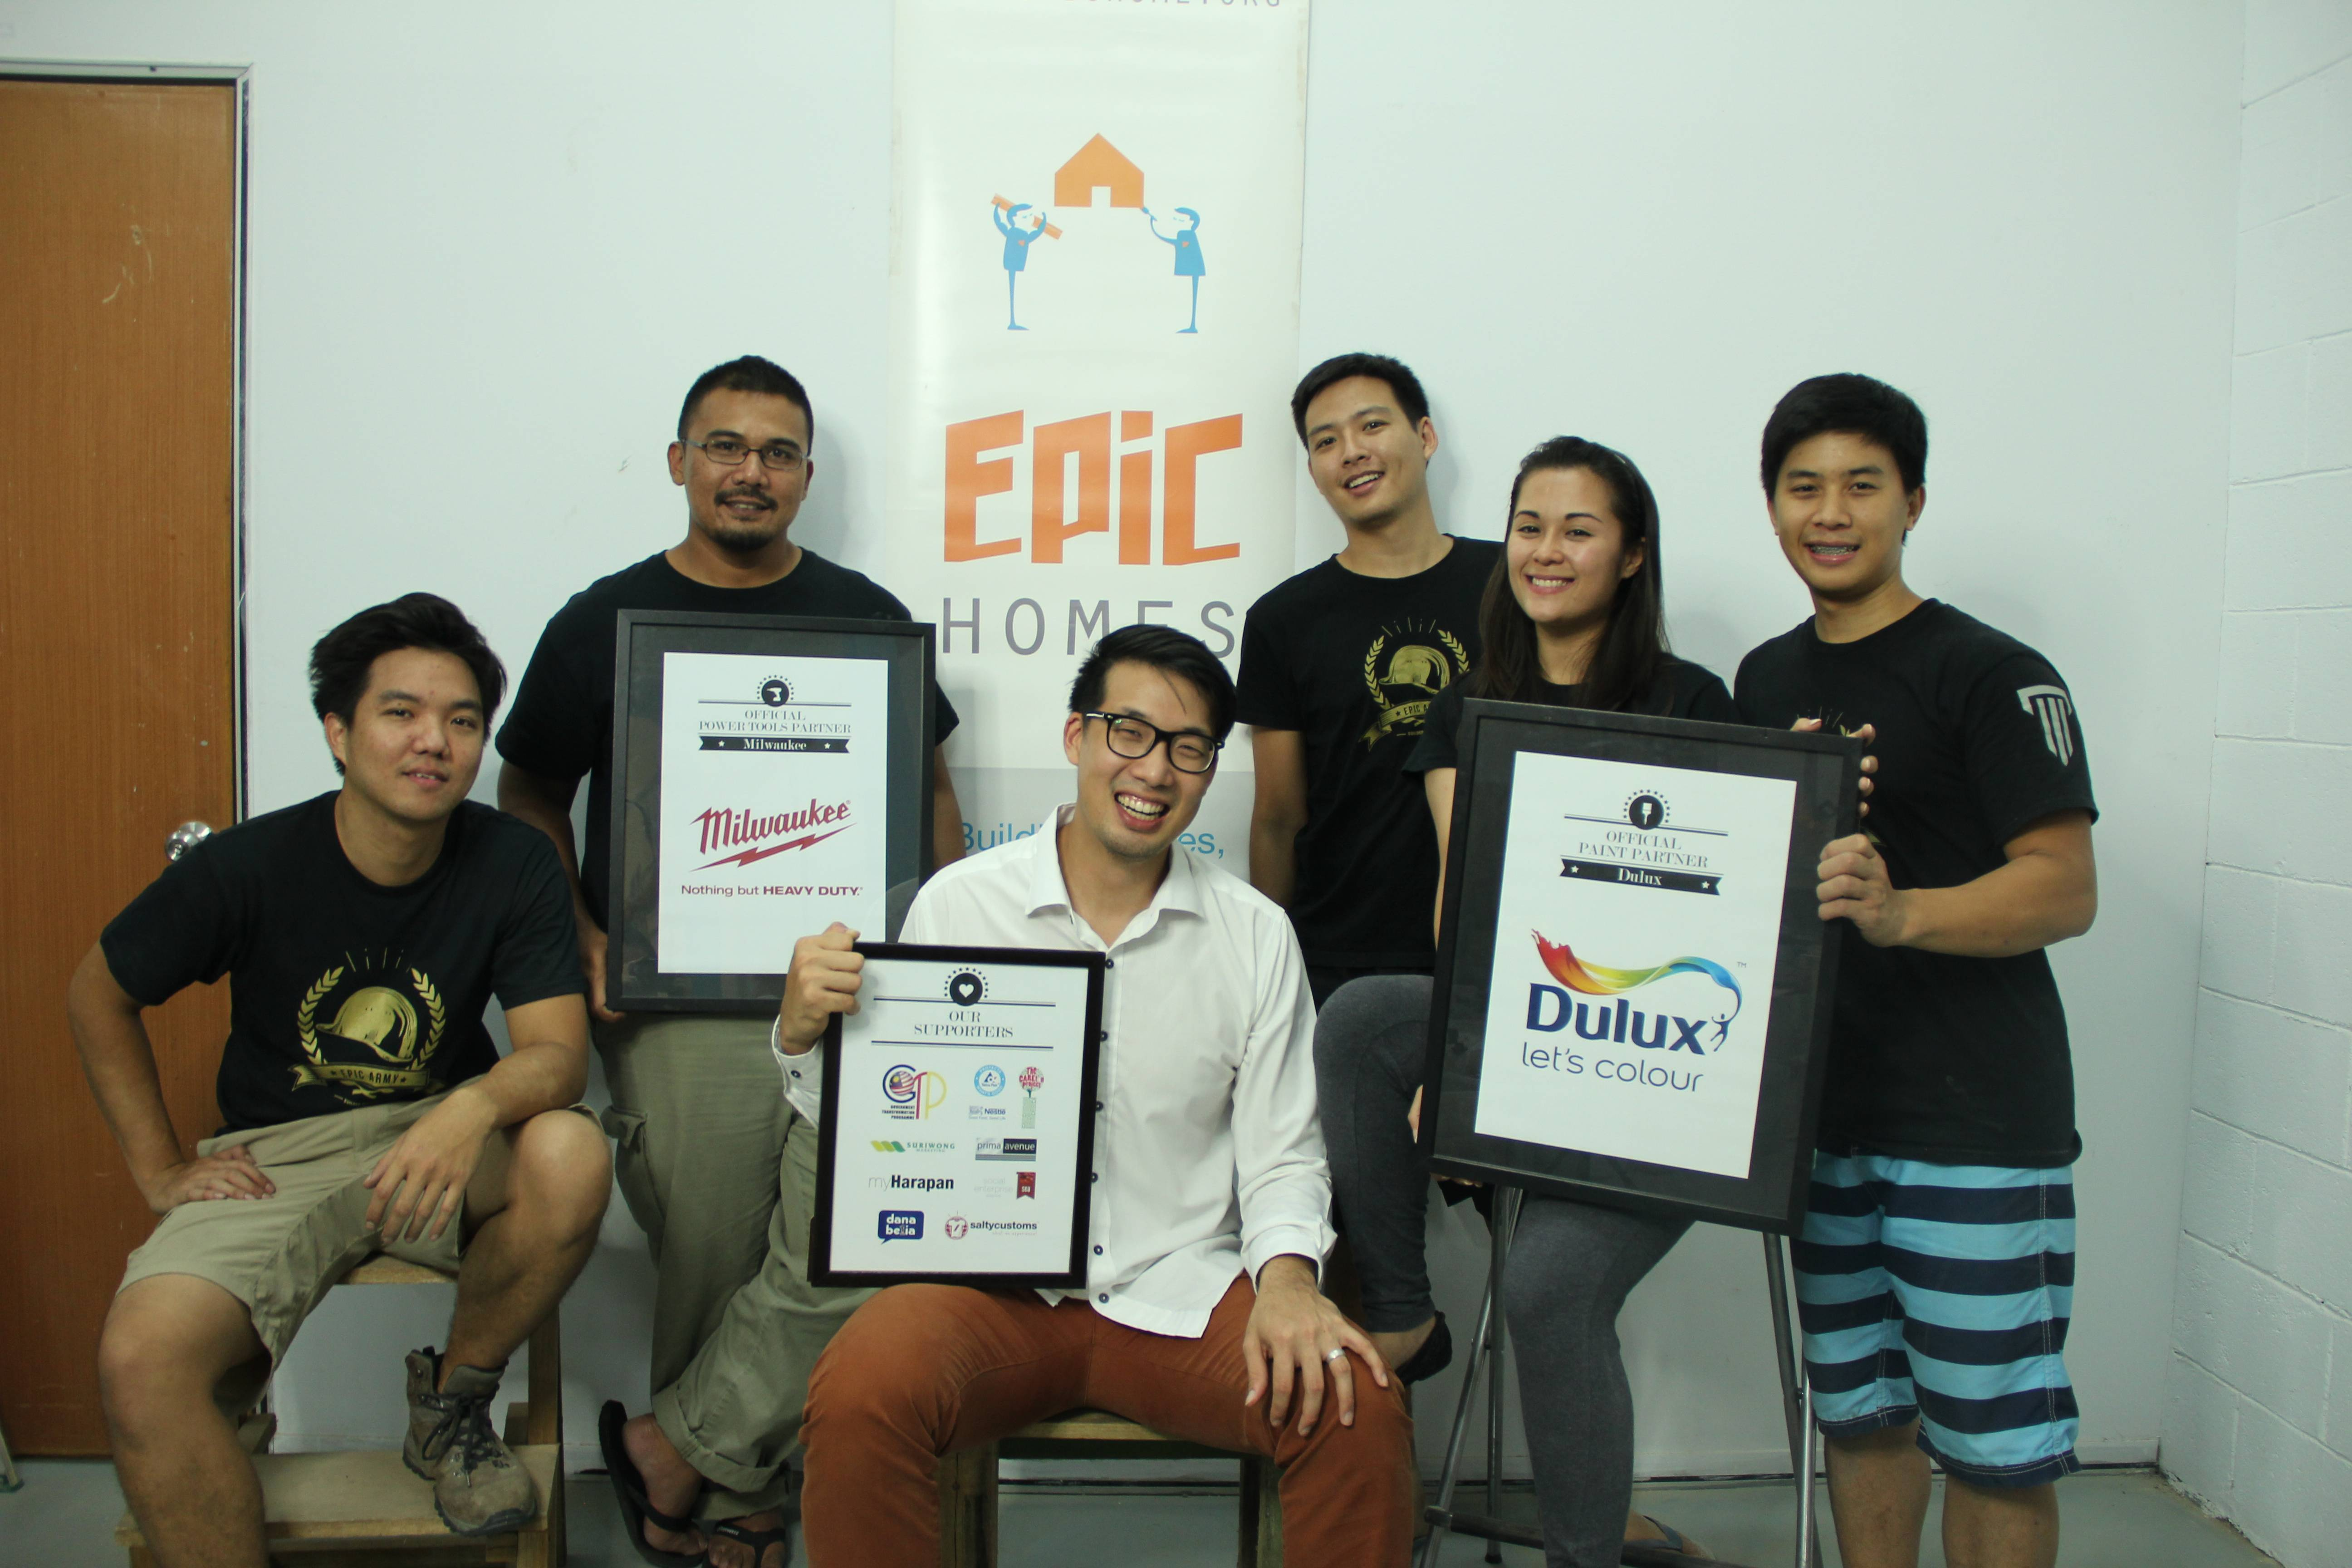 John-Son Oei (in white) with his team at EPIC Homes.